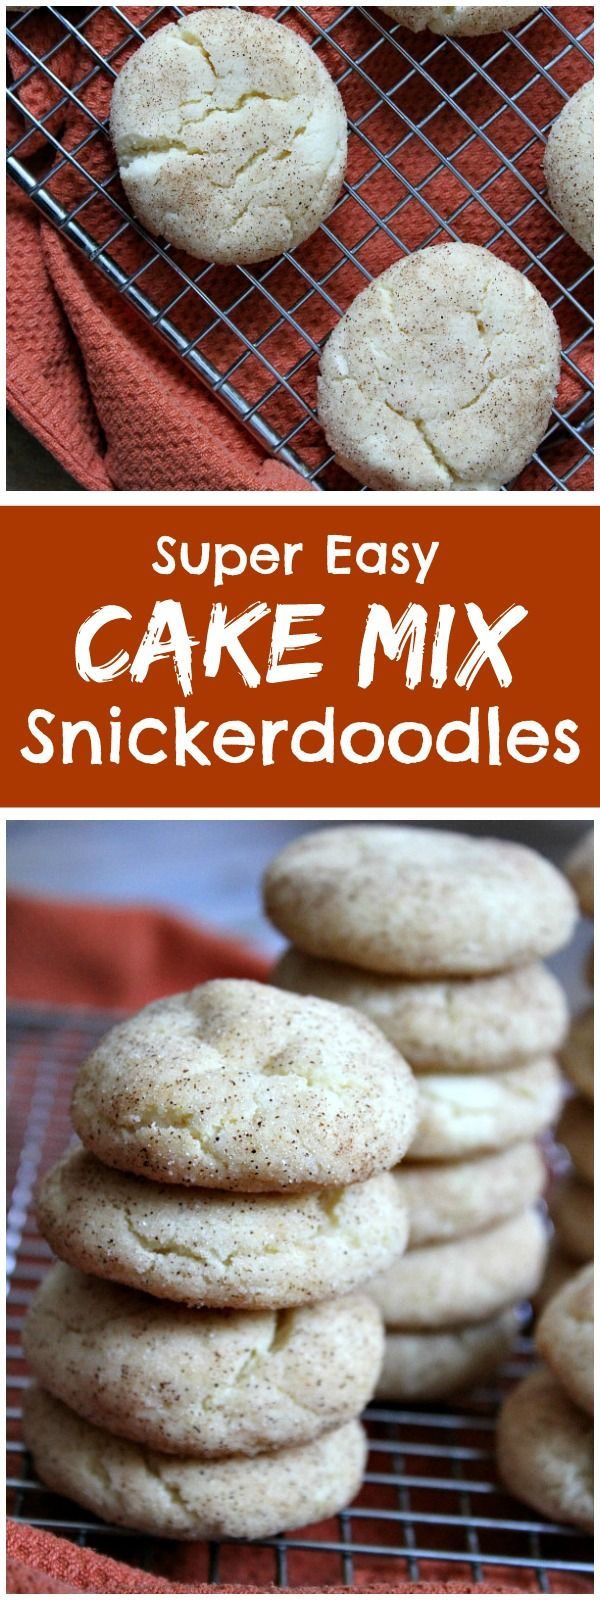 Super easy recipe for Cake Mix Snickerdoodles- it's amazing how easy this recipe is and how much they taste like classic Snickerdoodle Cookies.  These cookies are NOT cakey!